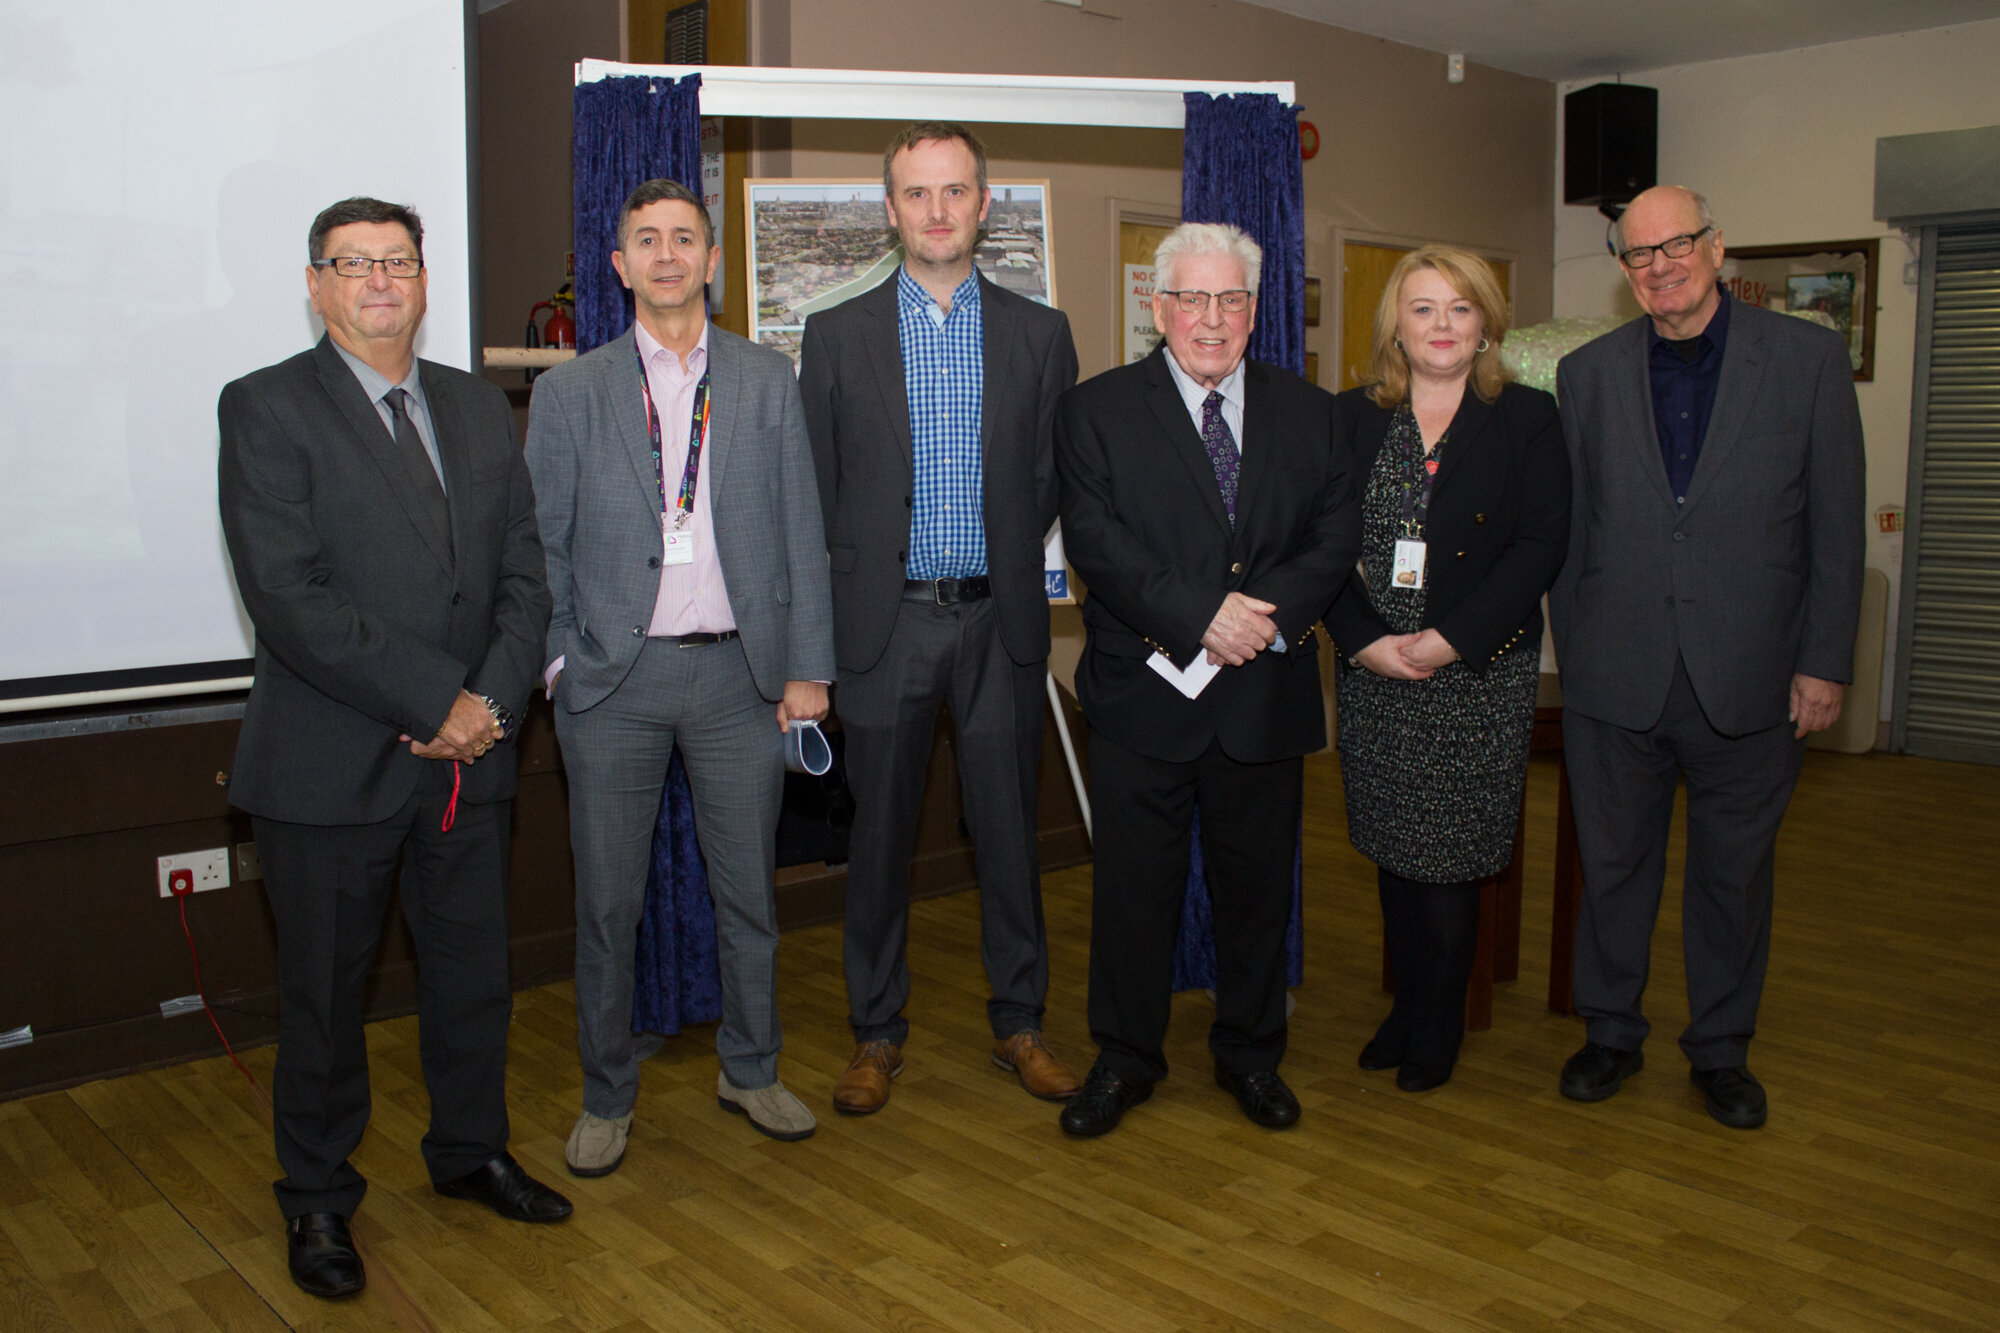 George Evans (CEO of the Eldonians), John Ghader (CEO of Prima Group), Craig Bradley (Specialist in Housing Delivery at Homes England), Tony McGann (Chairperson of the Eldonians), Angela Dodson (Development Manager at Prima Group) and Bill Halsall (Senior Partner at Halsall Lloyd Partnership)